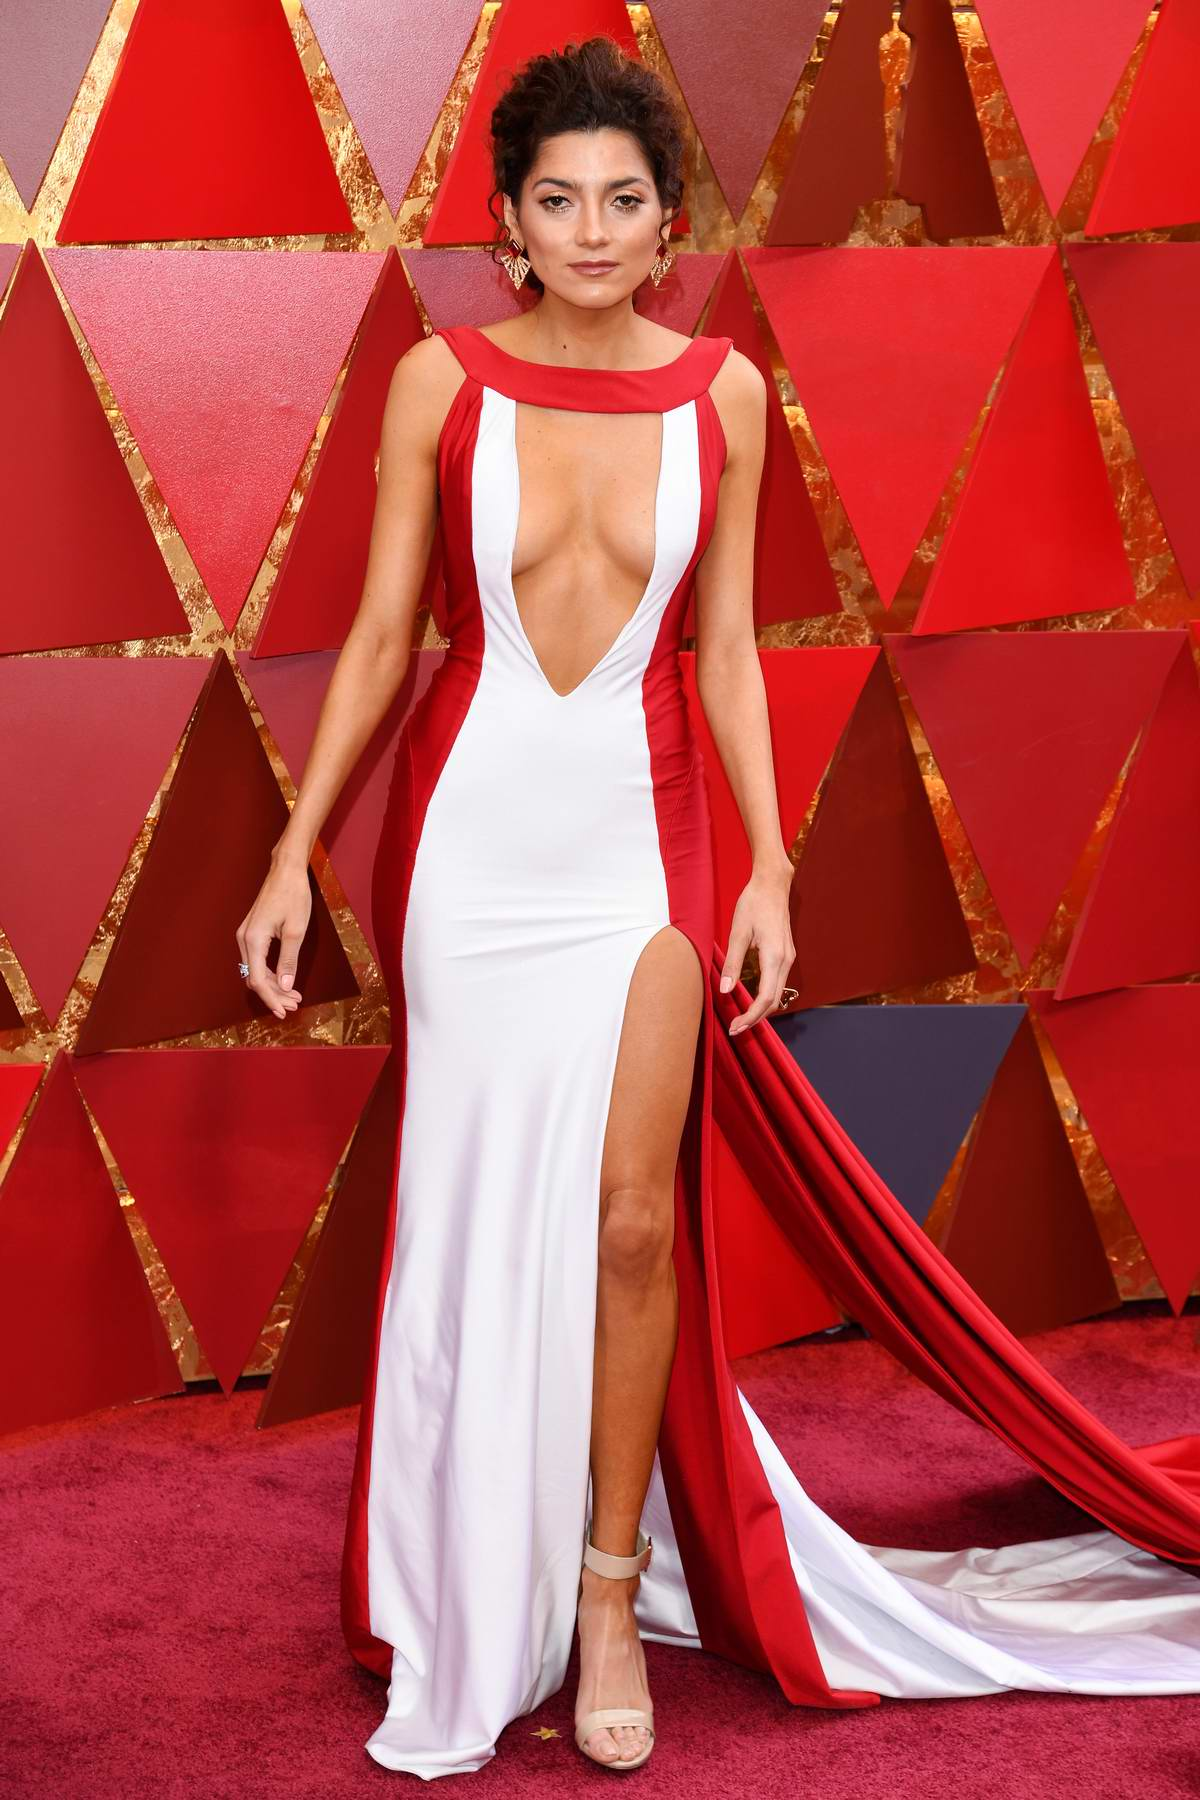 Blanca Blanco attends The 90th Annual Academy Awards (Oscars 2018) held at Dolby Theatre in Hollywood, Los Angeles